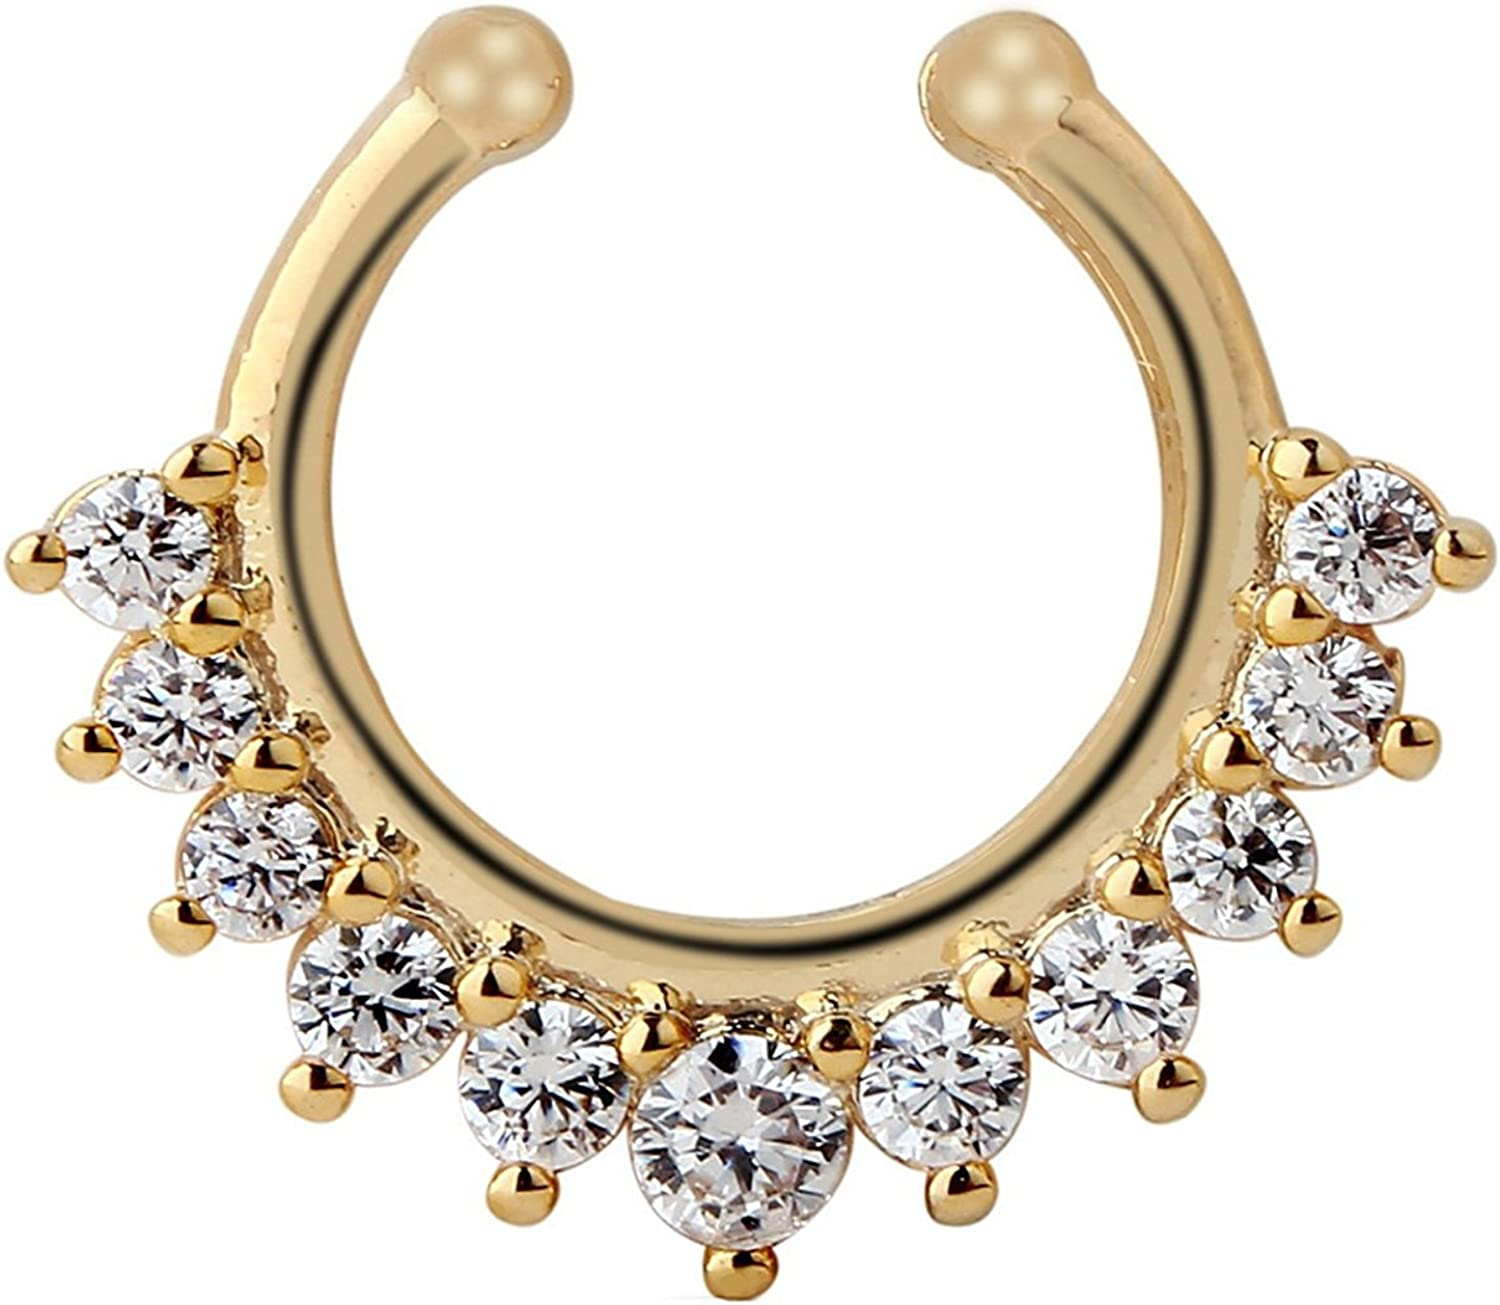 Achieer Nose Ring Septum Piercing Jewelry, Cubic Zircon Fake Septum Nose Ring for Women Non Piercing Clip On Body Piercing Jewelry